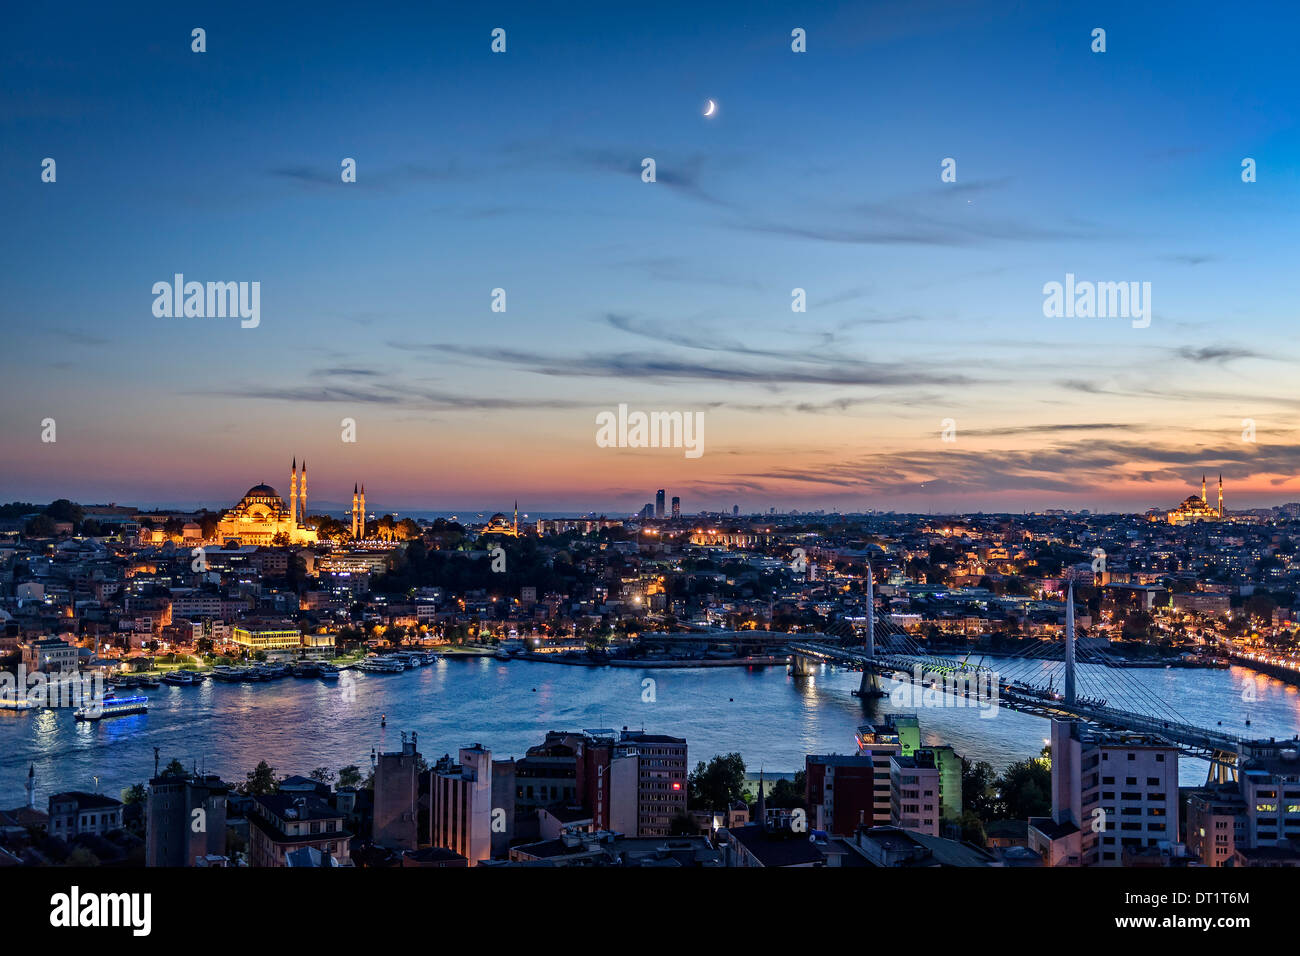 View over the Golden Horn with the Suleymaniye Cami to the left. - Stock Image